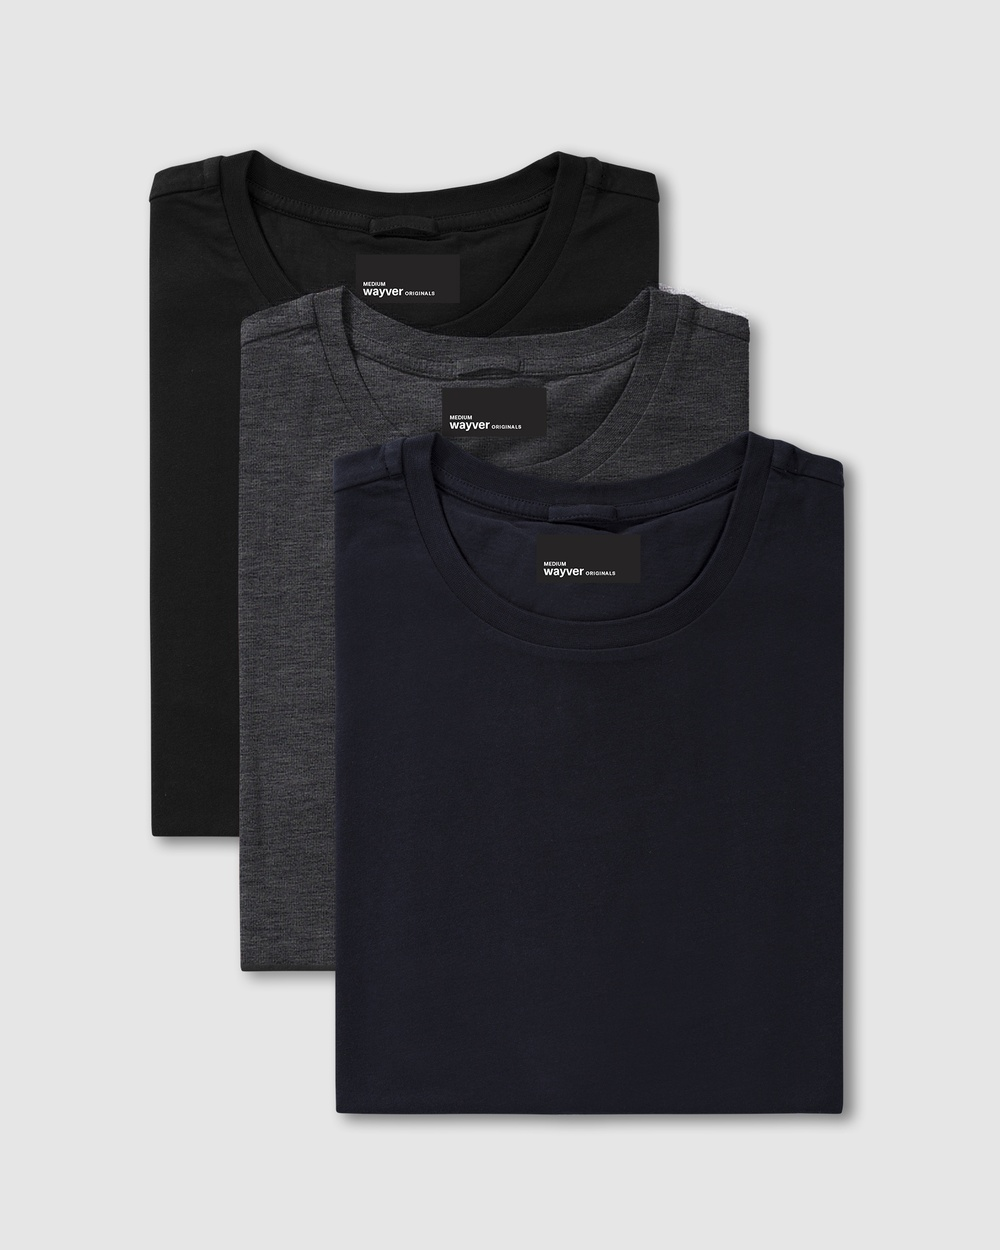 Wayver - The Essential Crew Tee 3 Pack - T-Shirts & Singlets (Black, Charcoal & Navy) The Essential Crew Tee 3-Pack